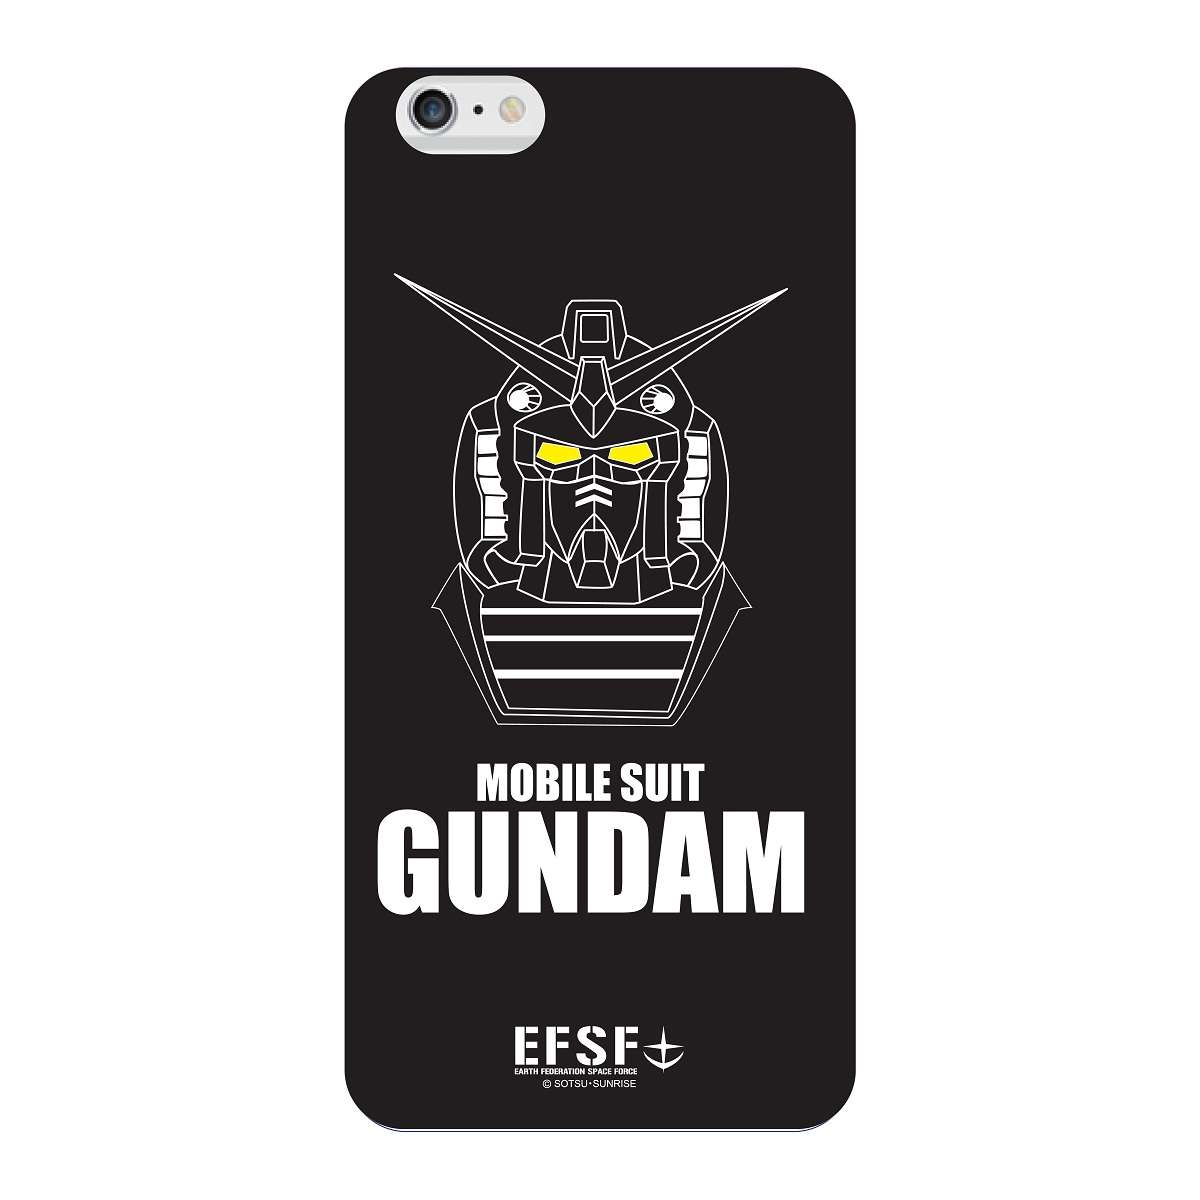 iPhone 6+ (5.5'') 手機殼: Mobile Suit Big Head